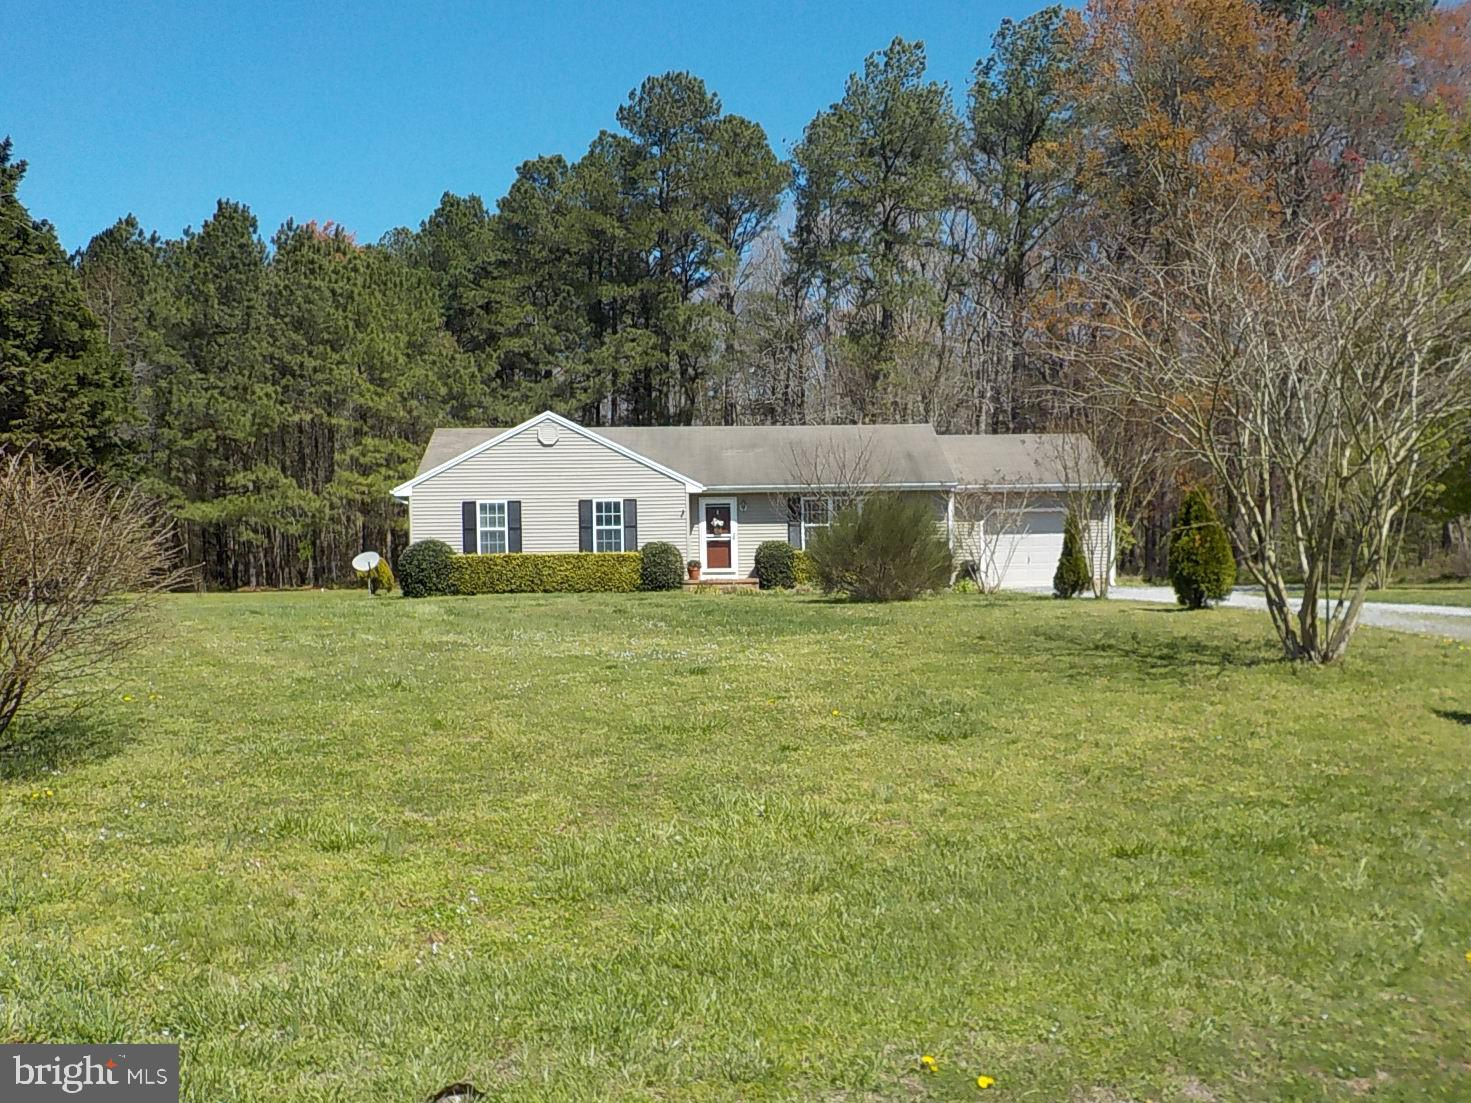 Home Sweet Adorable Home!  Three Bedroom,  2 Bath  home with attached garage on 1.04 acre!  Living R